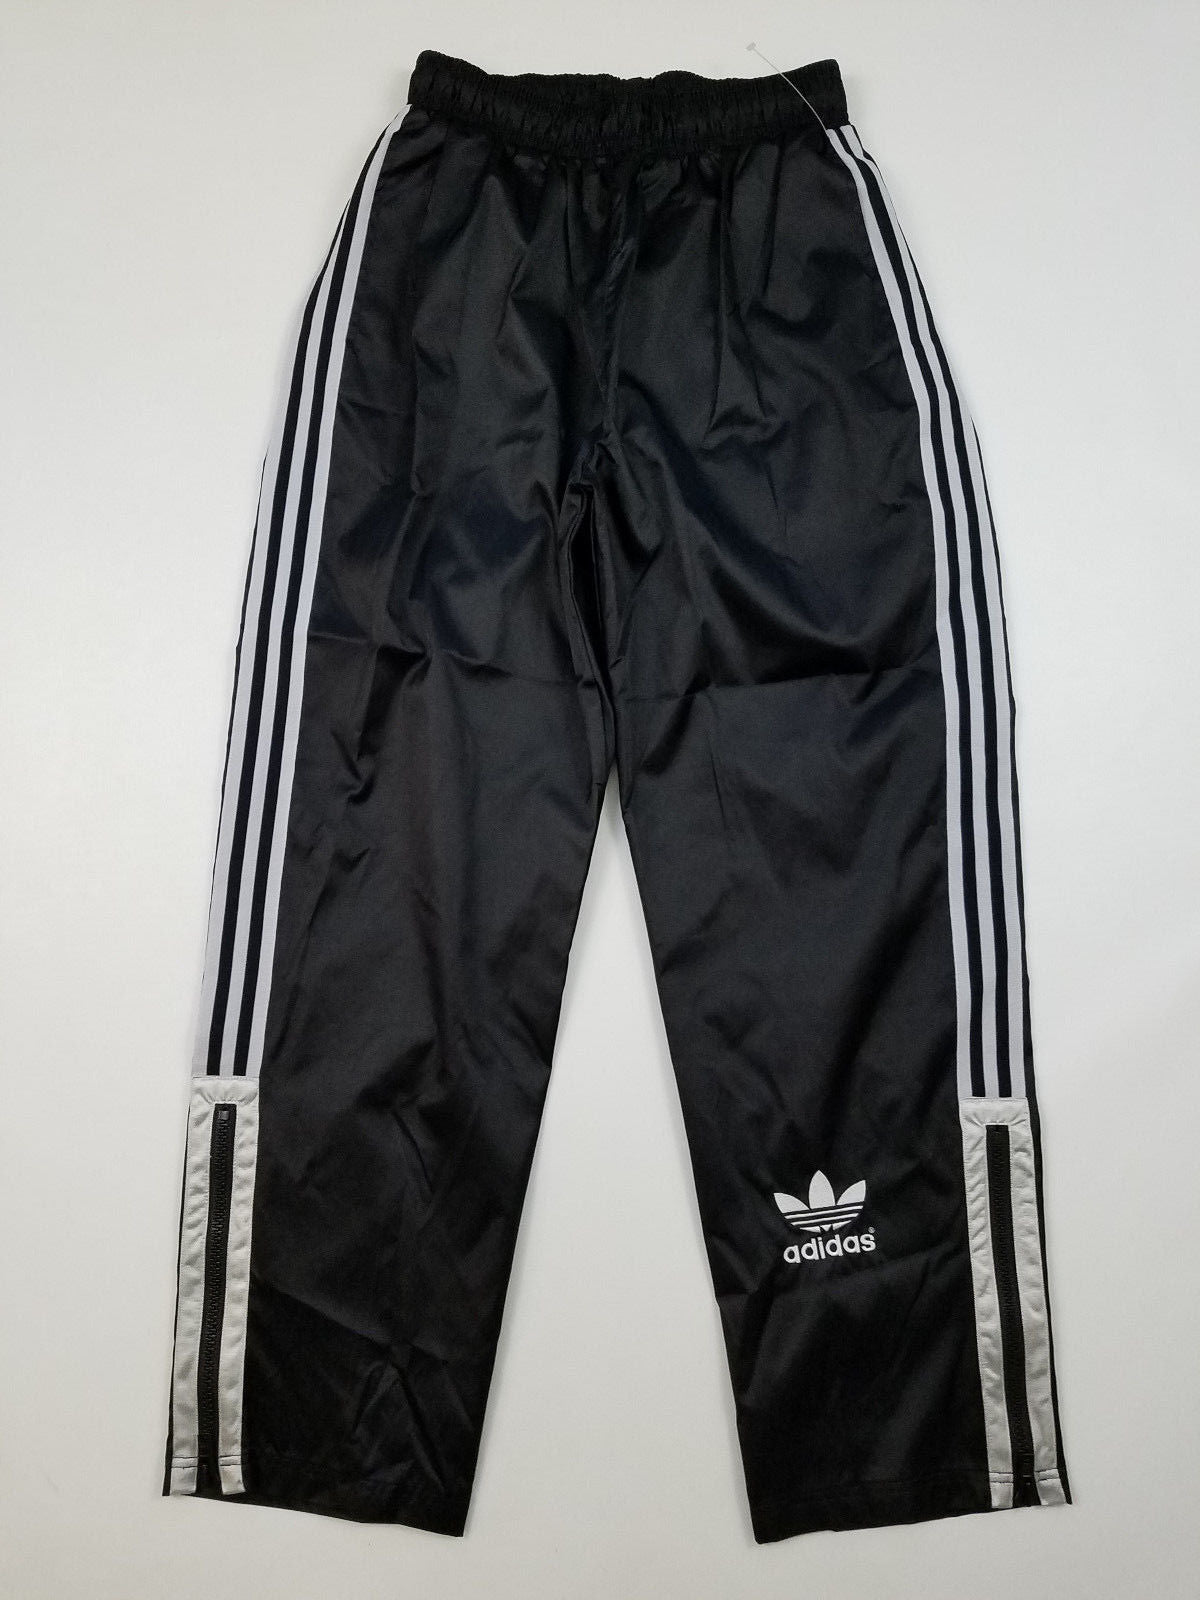 7d910fa7 Vintage Adidas Trefoil Track Pants Men's Medium New Old Stock 80s with Tags  - Ninety One